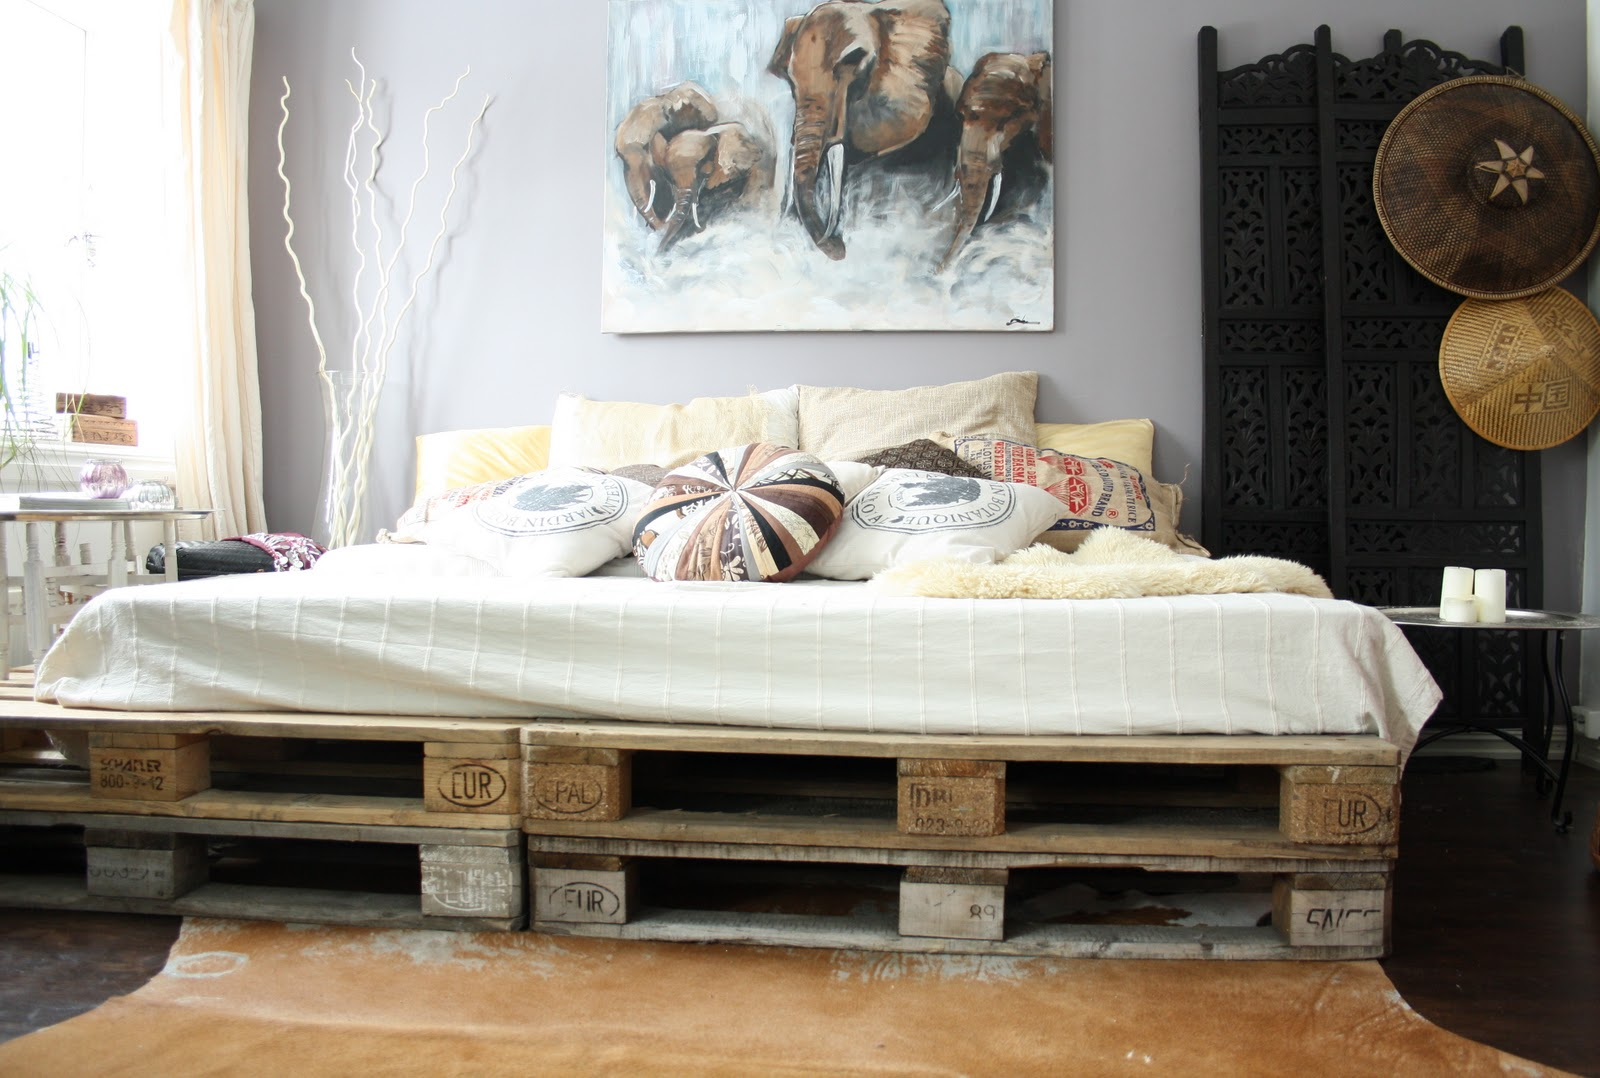 Single pallet bed frame - Cheap Shabby Chic Bed Frame Furniture From Pallet Diy Decoration Painting Elephants